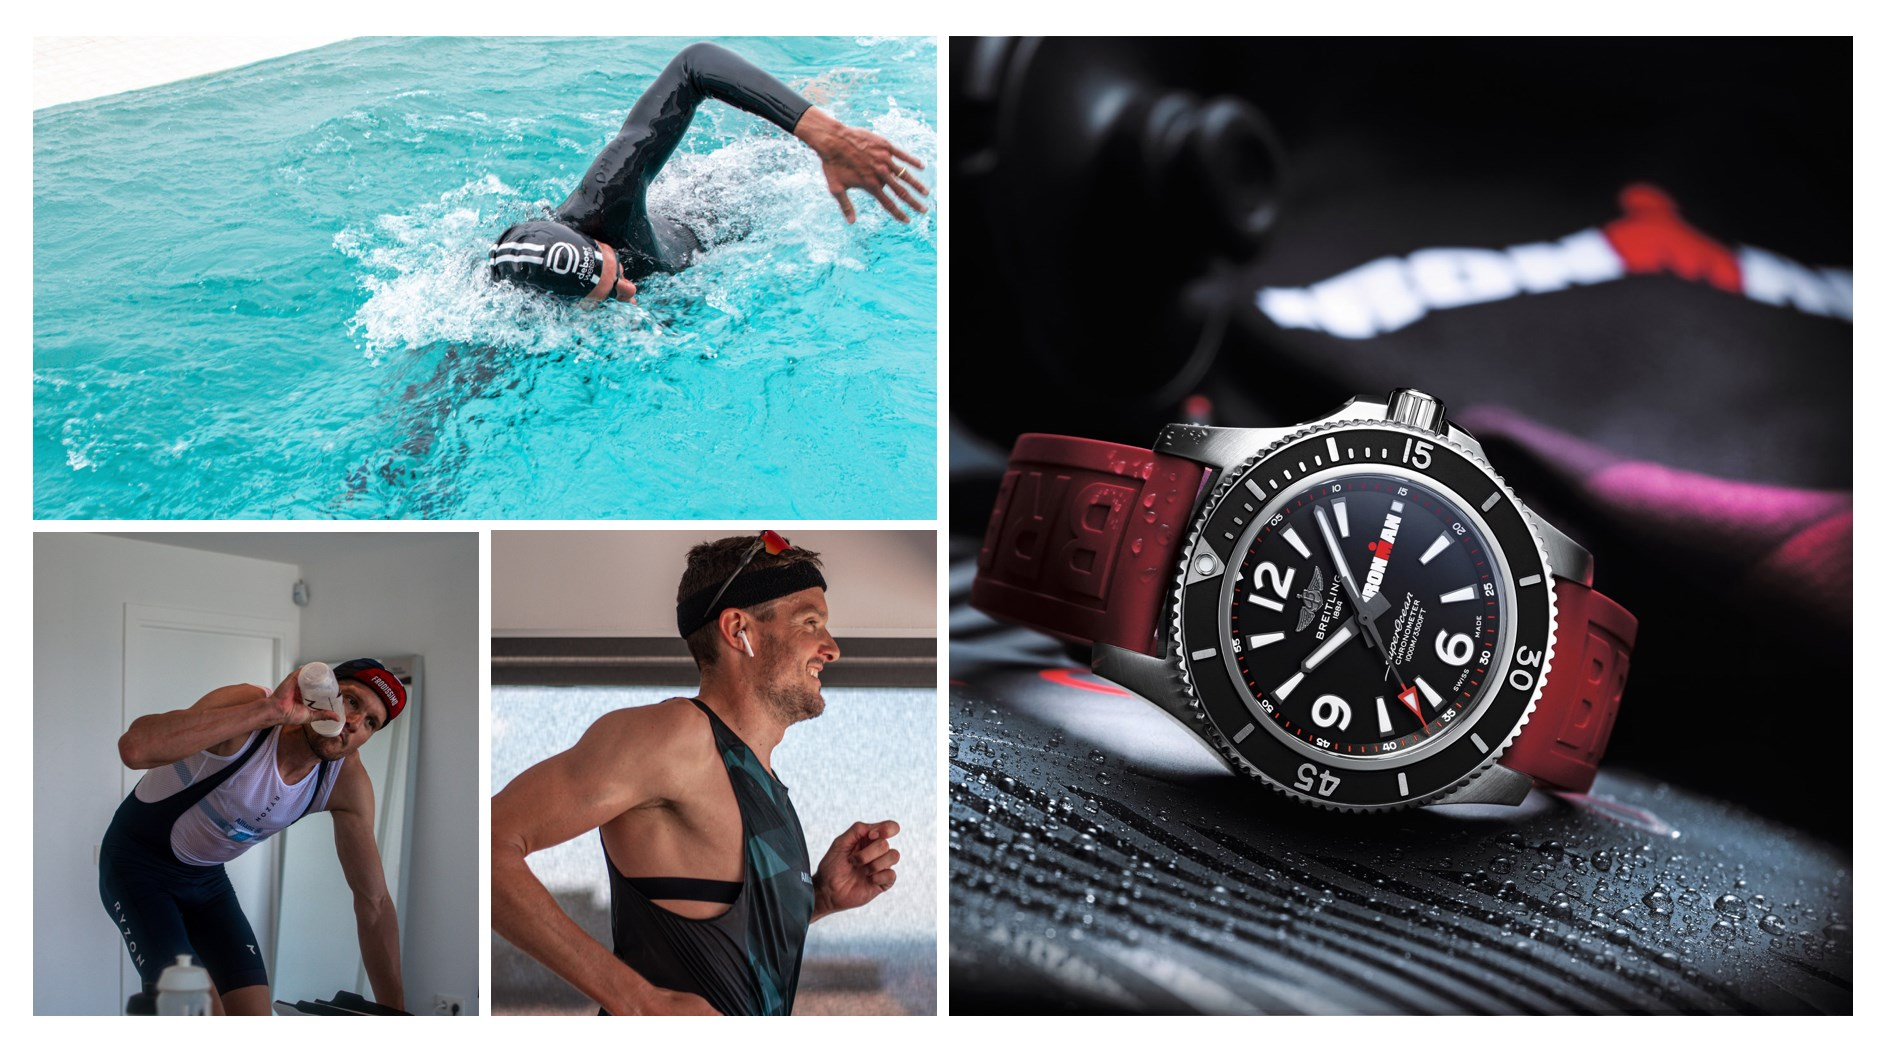 Jan Frodeno Triatlon Ironman-Breitling-2020-en casa-slider